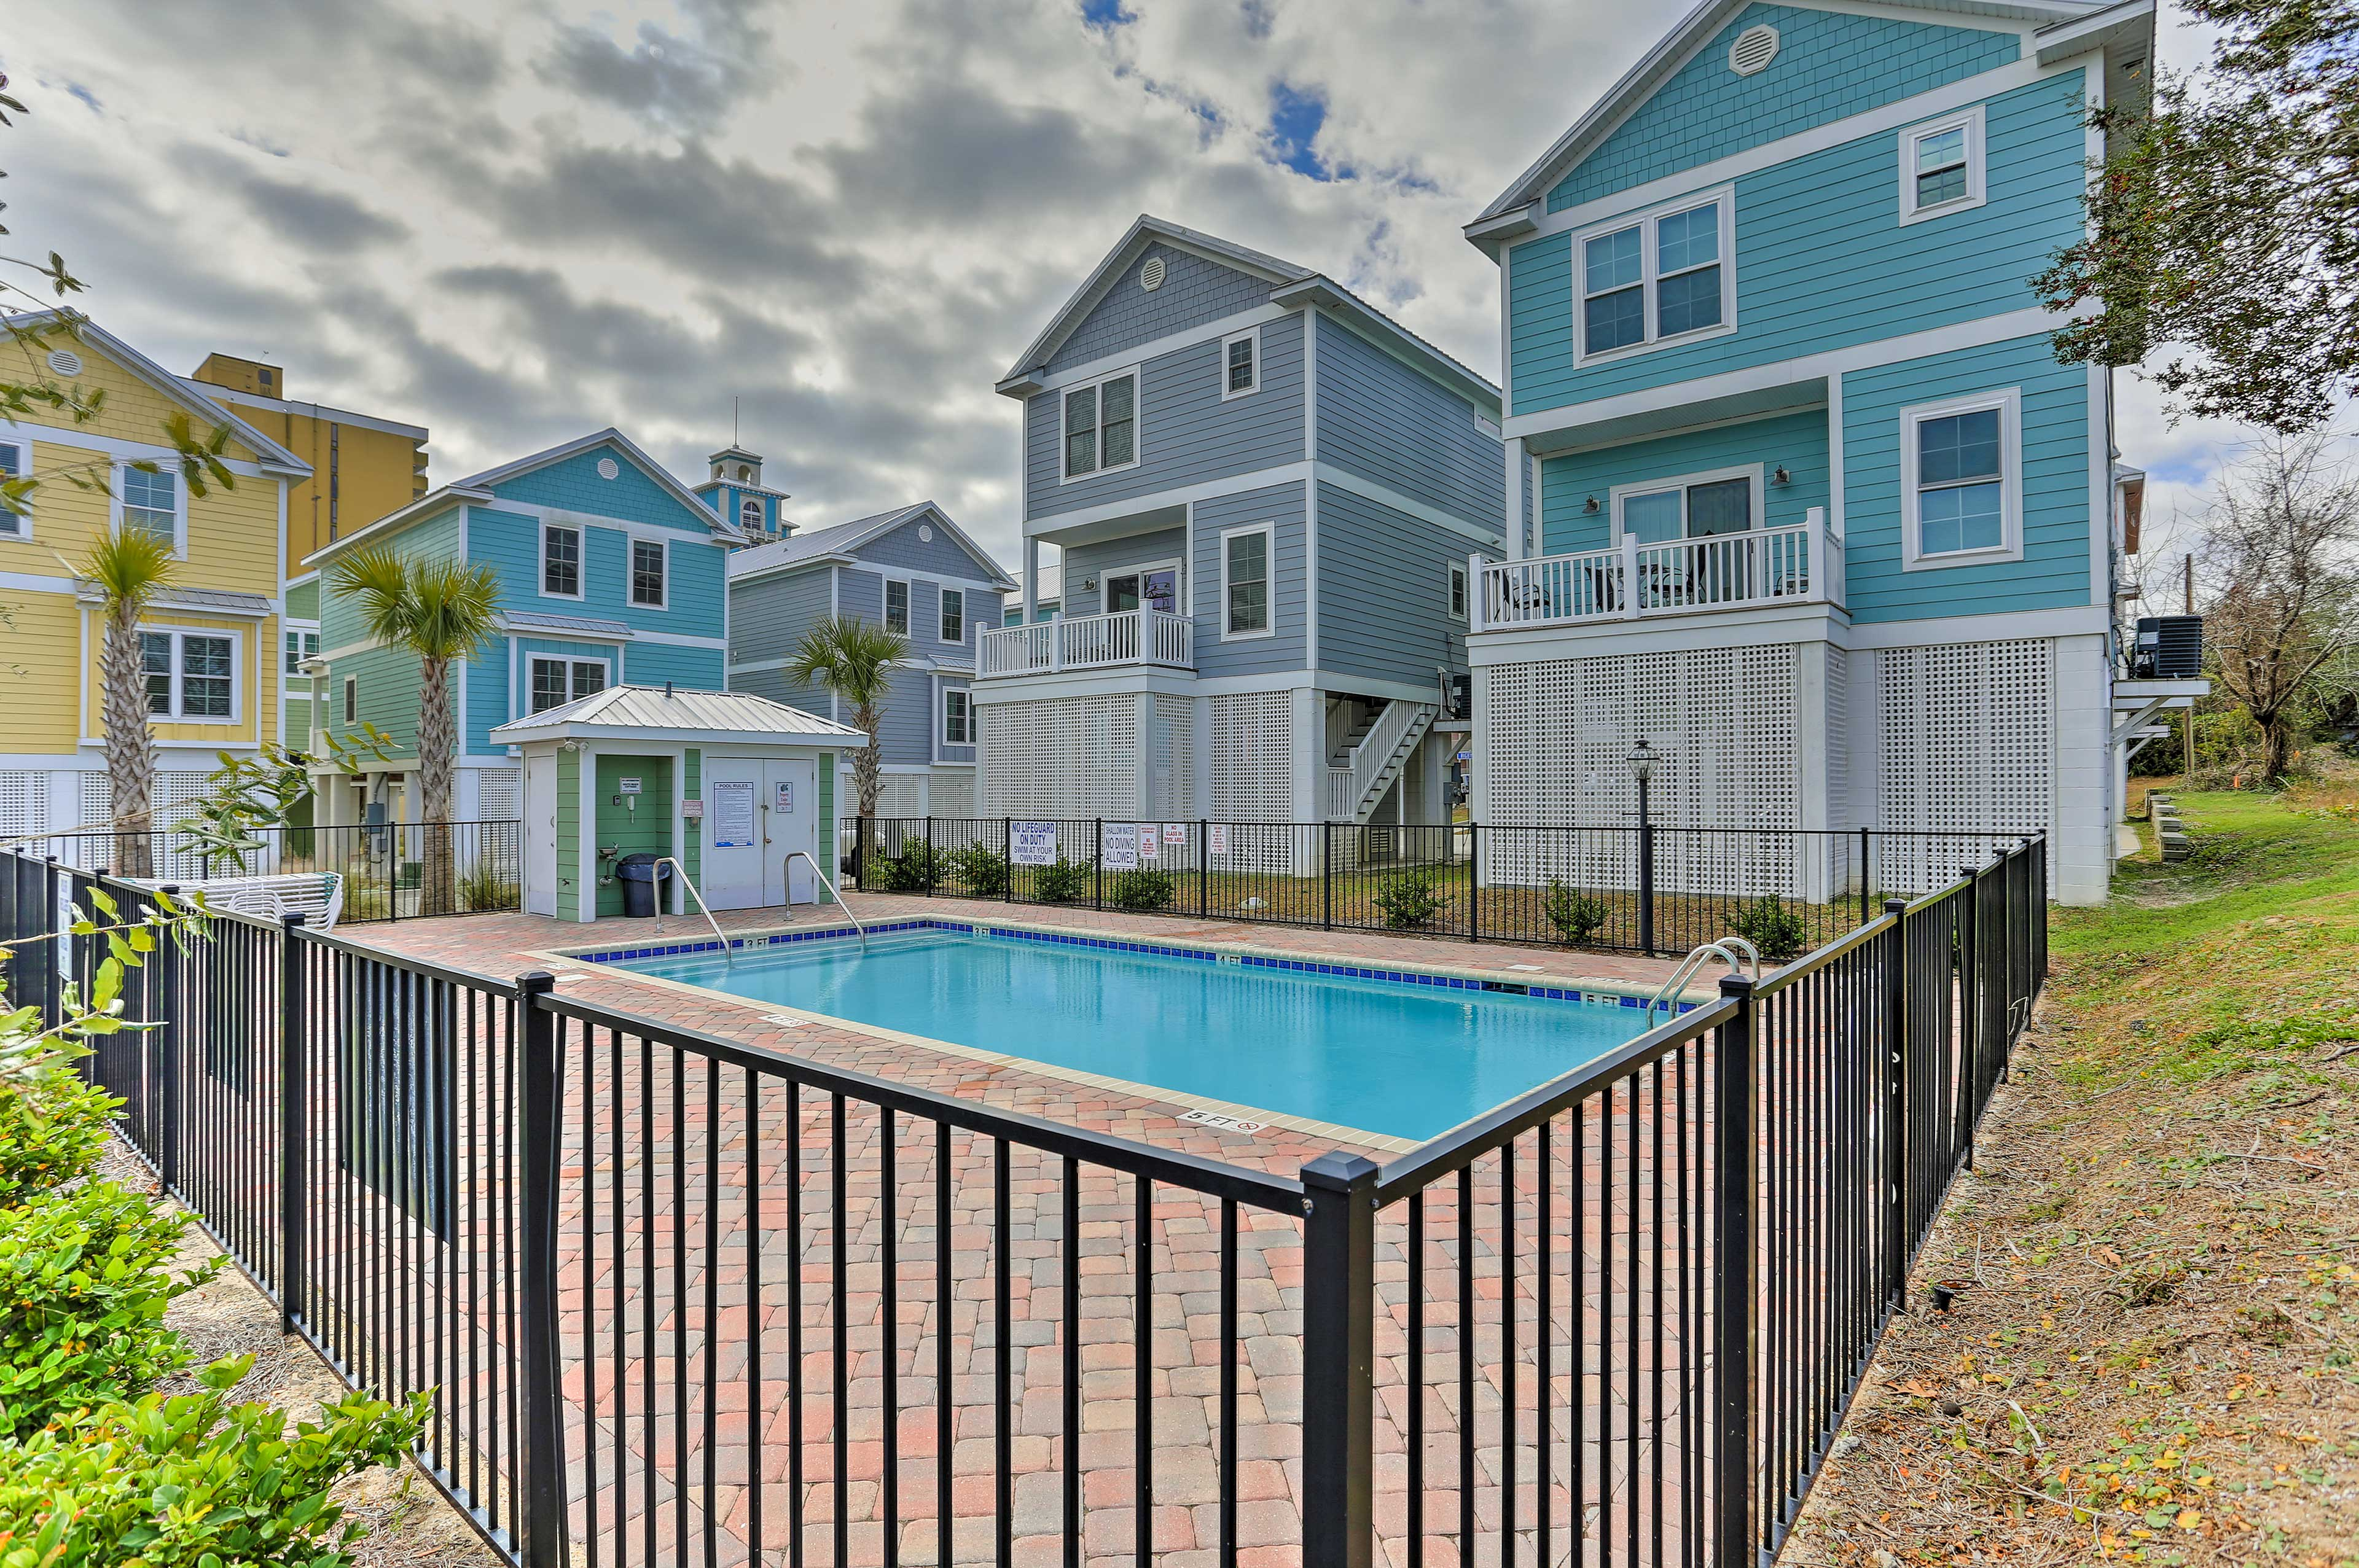 Myrtle Beach awaits your arrival at this colorful vacation rental house!